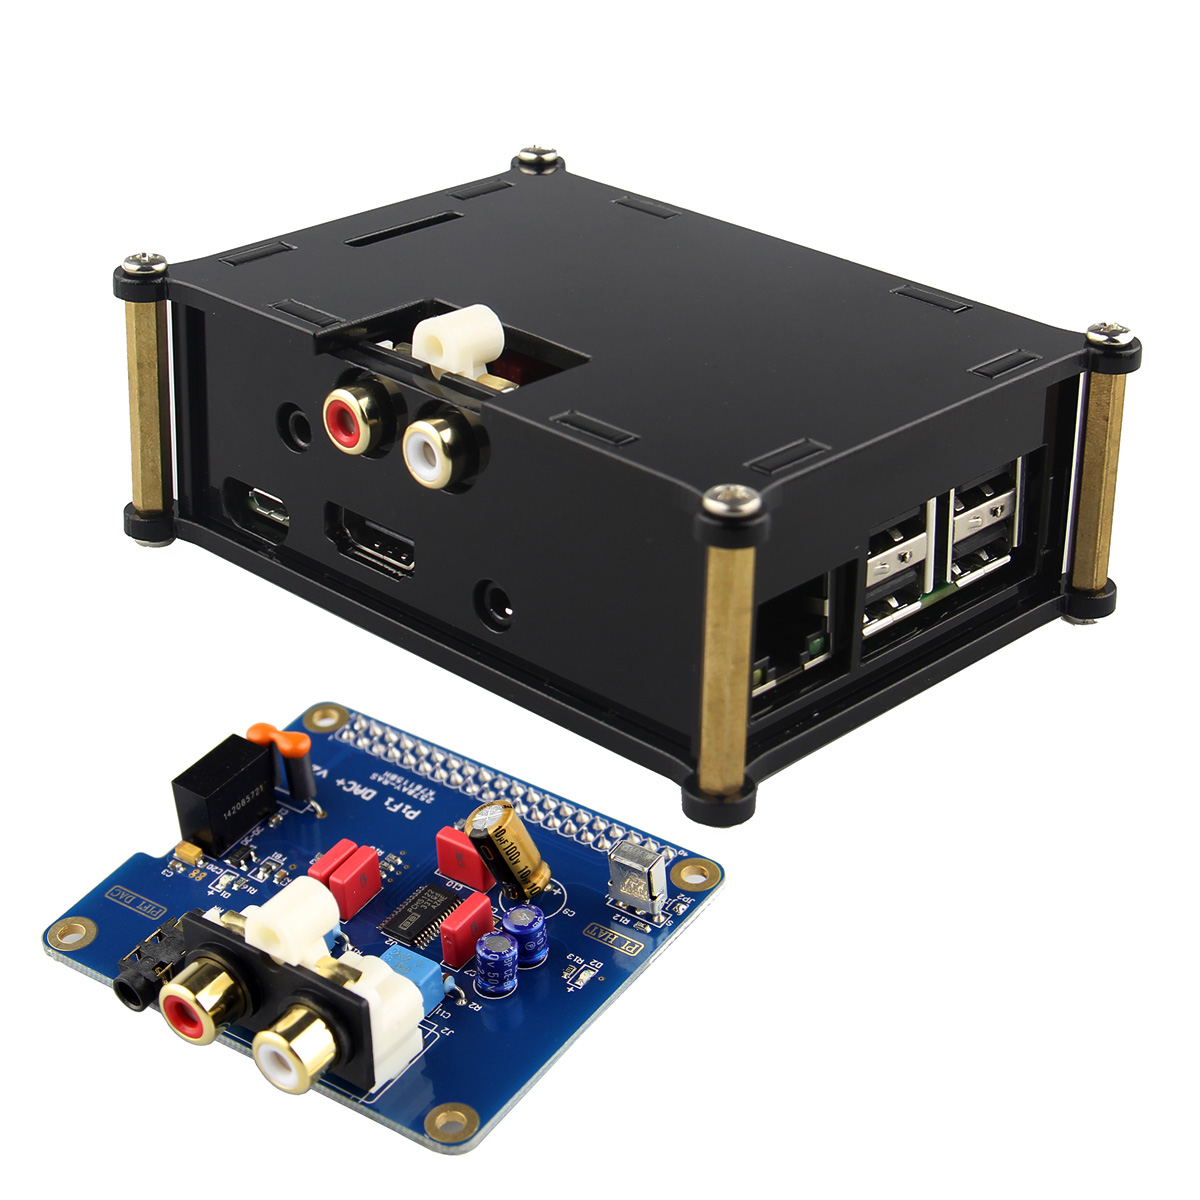 LEORY Digital Audio Card Pinboard HIFI DAC+ With Case For Raspberry Pi 2 Model B / B+ / A+ Volumio system